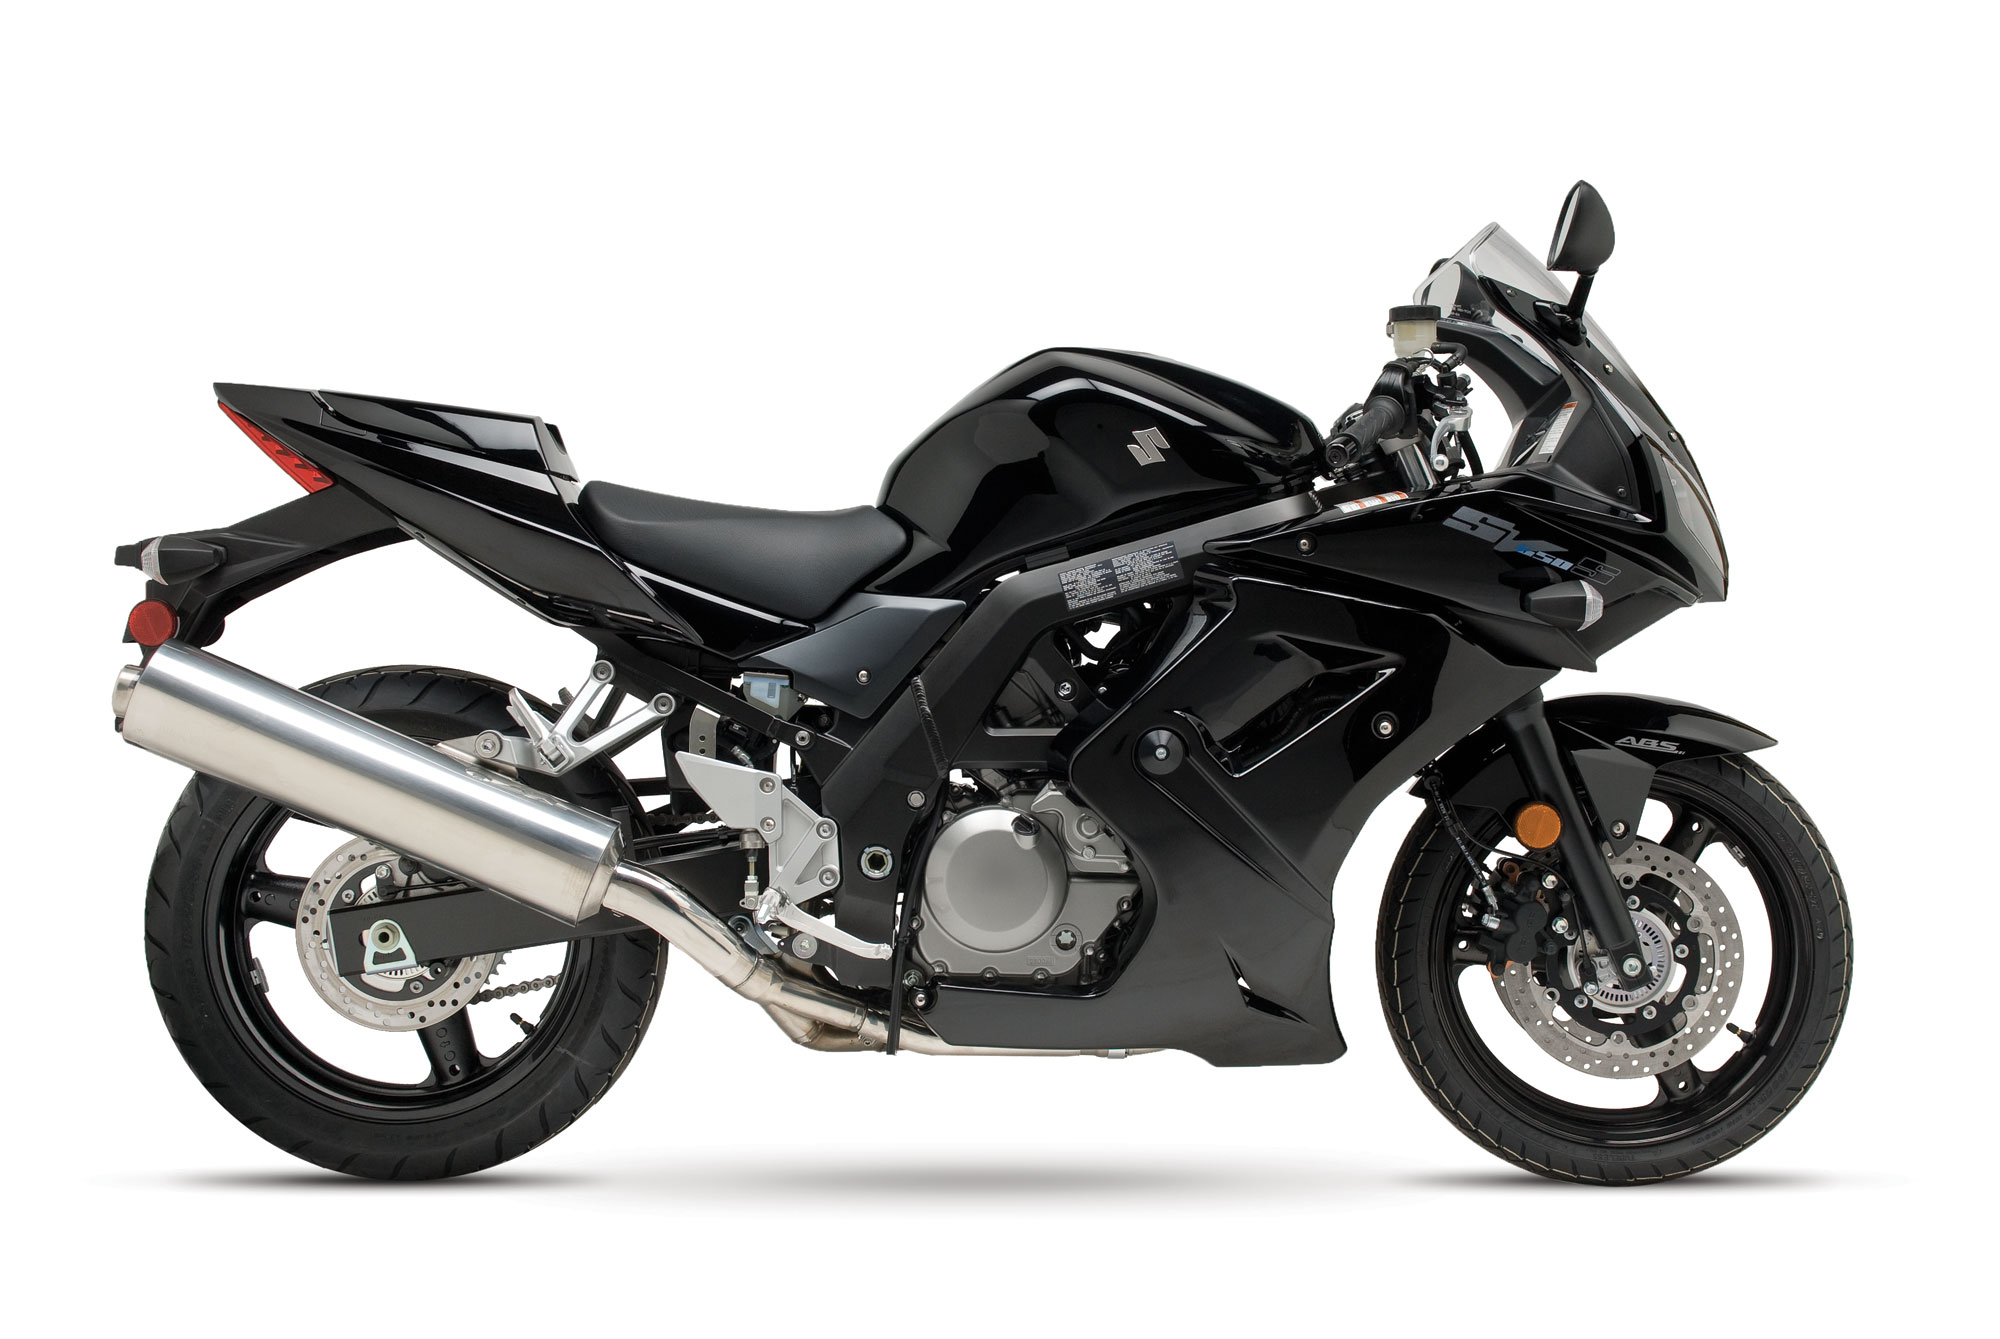 2010 suzuki sv 650 s abs pics specs and information. Black Bedroom Furniture Sets. Home Design Ideas